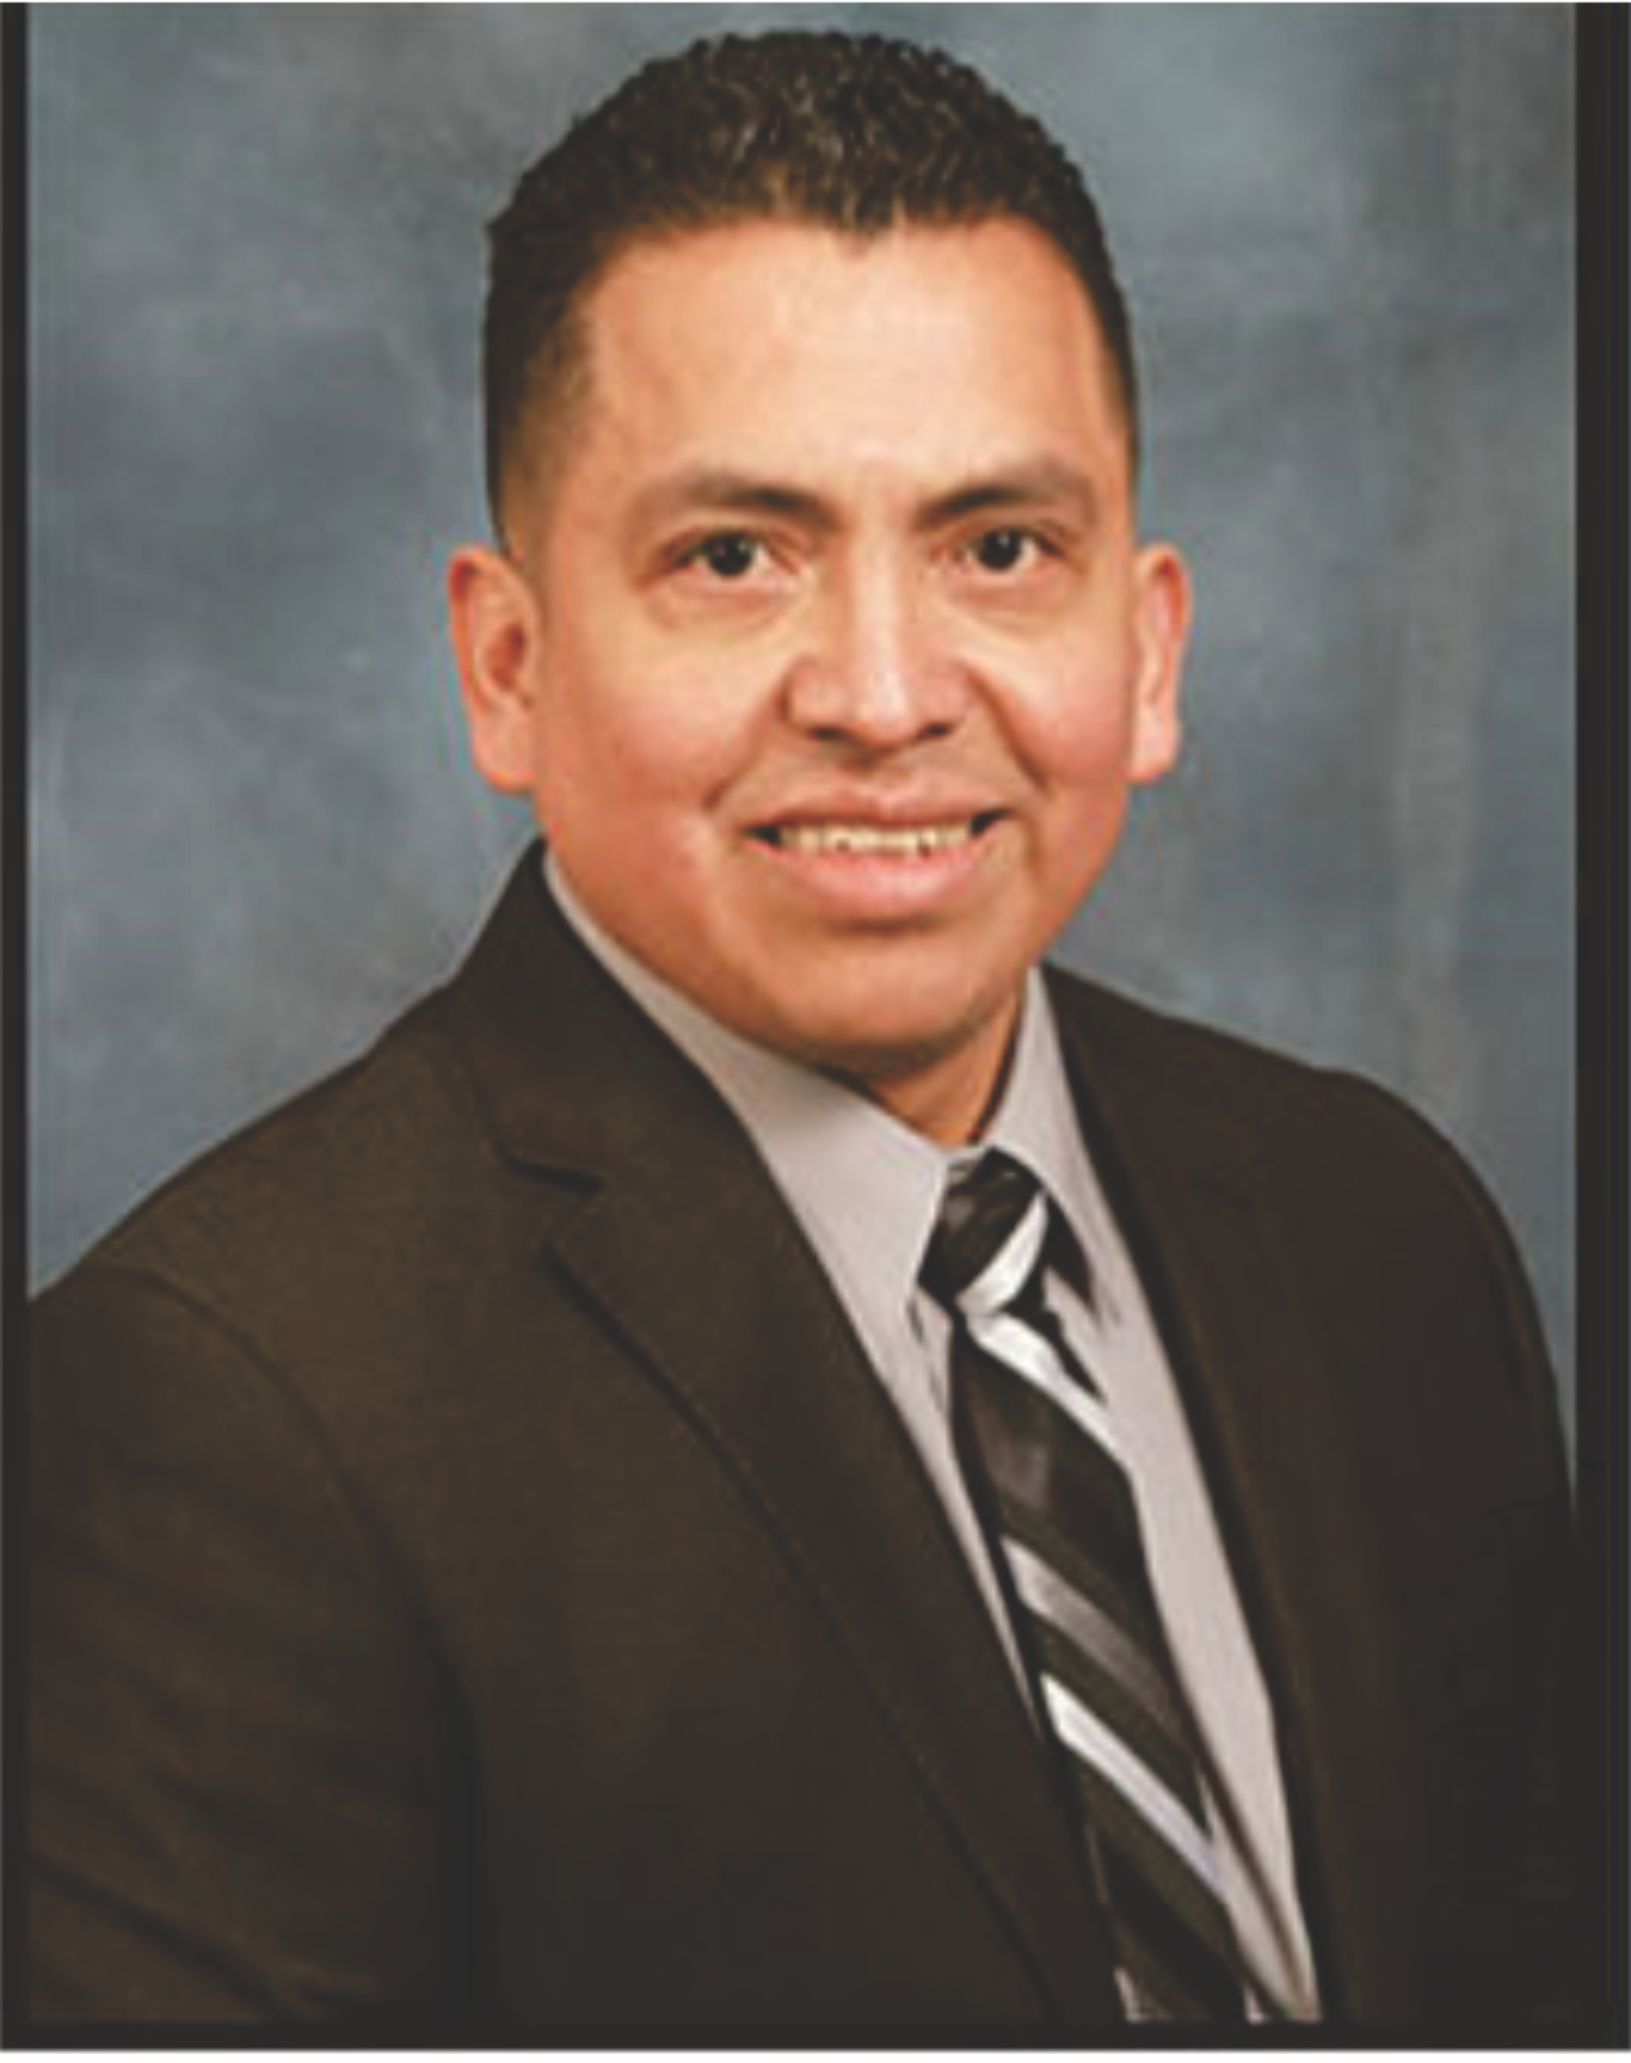 Jose Garcia | Health and Life Insurance Agent | Silver Spring, MD 20910